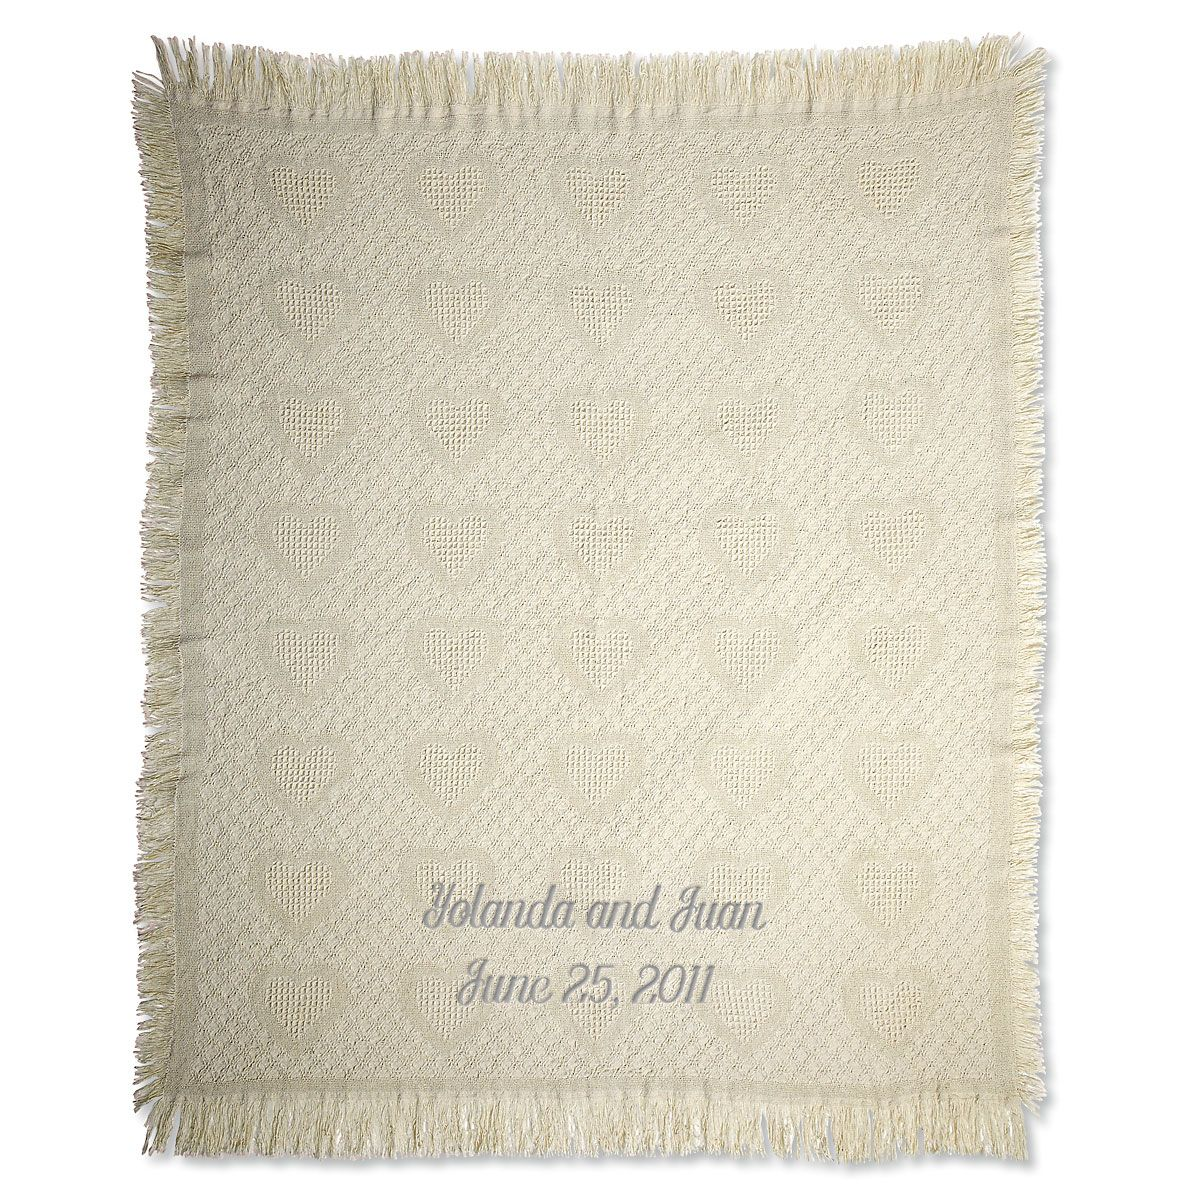 Honeycomb Heart Personalized Throw Silver Thread